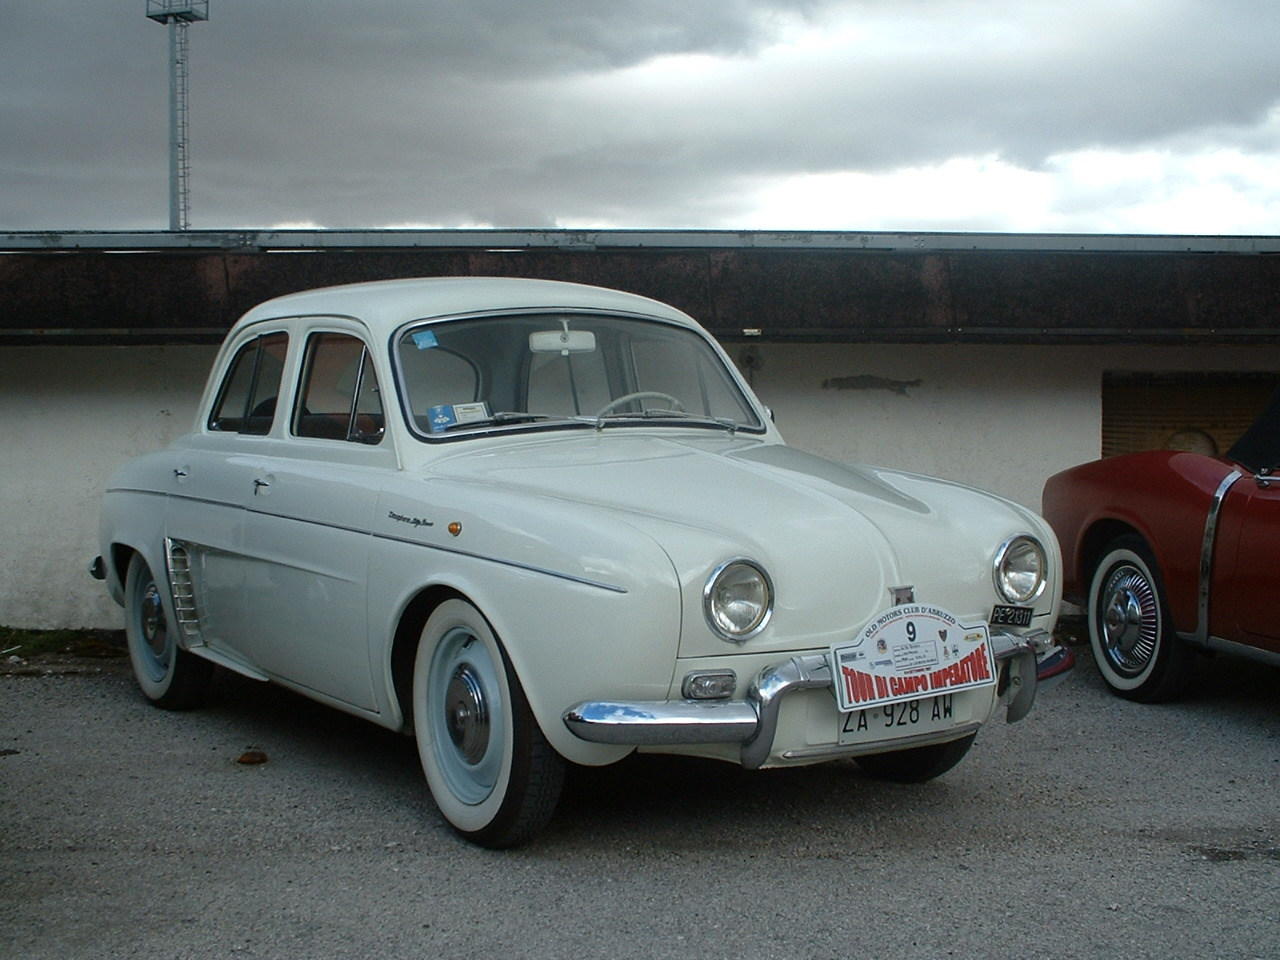 blanche avd Renault Dauphine, 1960